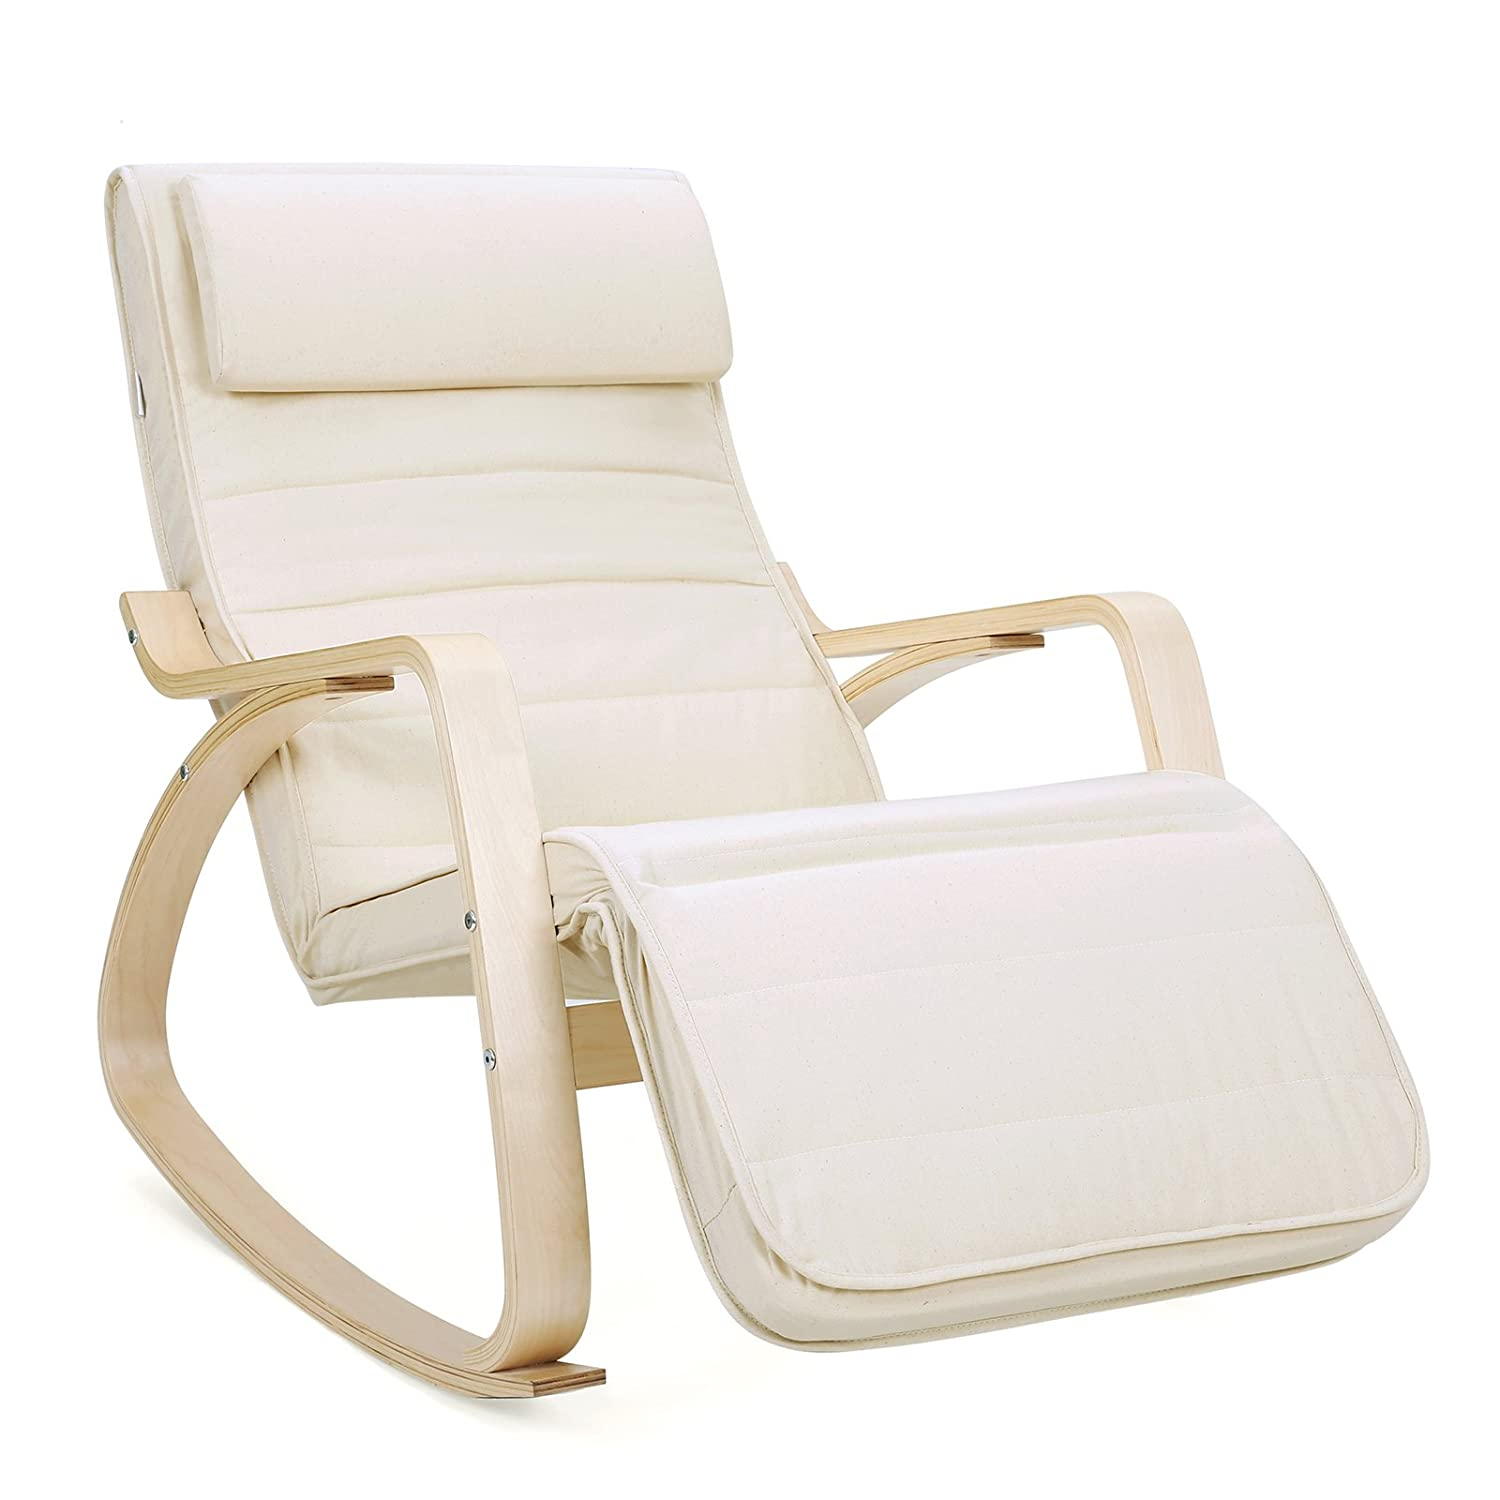 SONGMICS Sunlounger Relaxing Rocking Chair with Adjustable Footrest Max Load: 150 kg Beige LYY10M